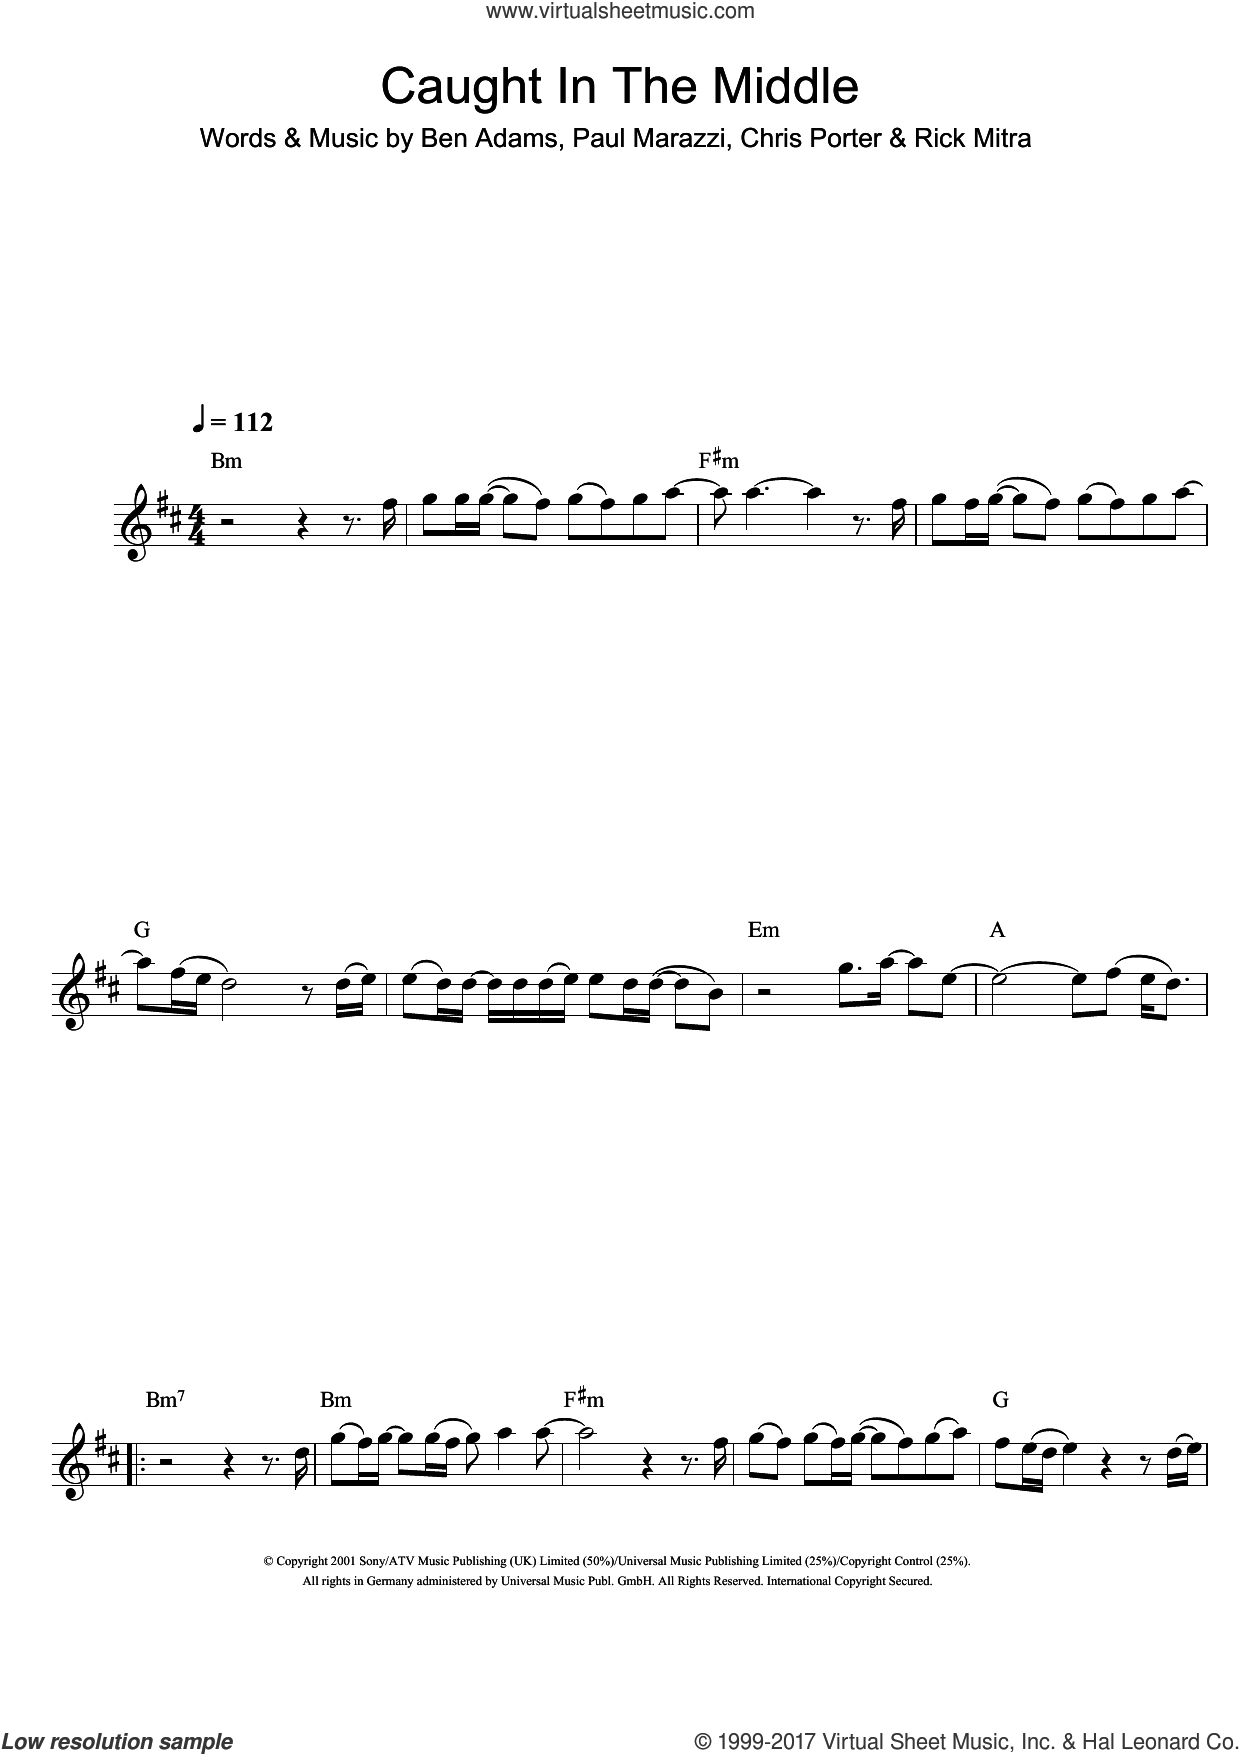 Caught In The Middle sheet music for flute solo by A1, Ben Adams, Chris Porter, Paul Marazzi and Rick Mitra, intermediate skill level